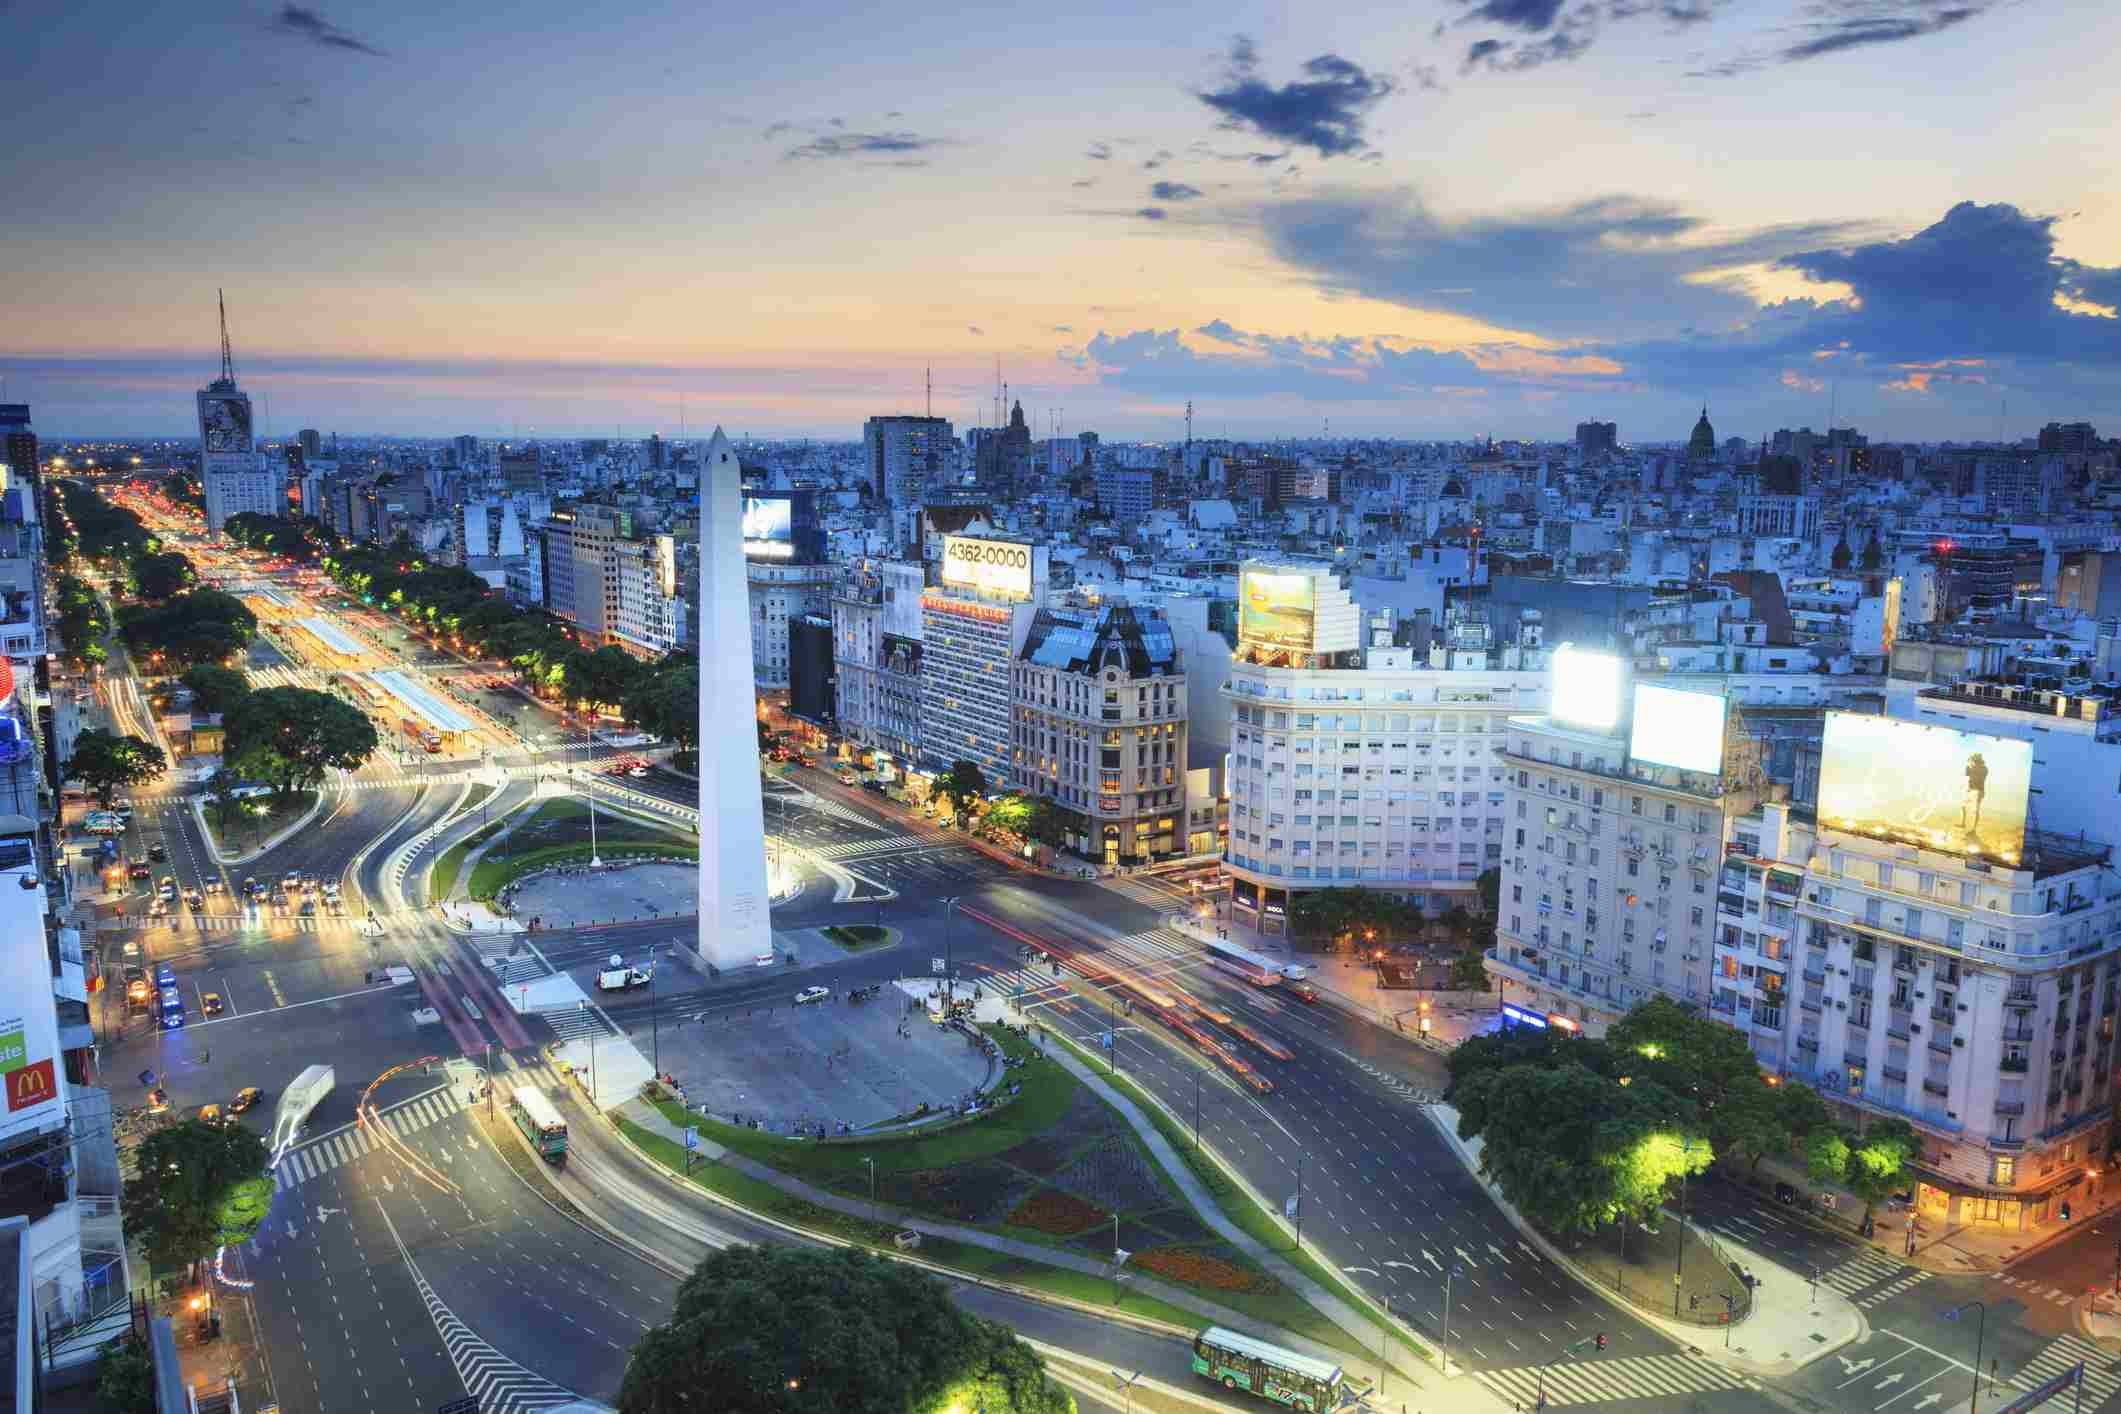 Argentina, Buenos Aires, Elevated view of Avenida 9 de Julio and Obelisk at sunset